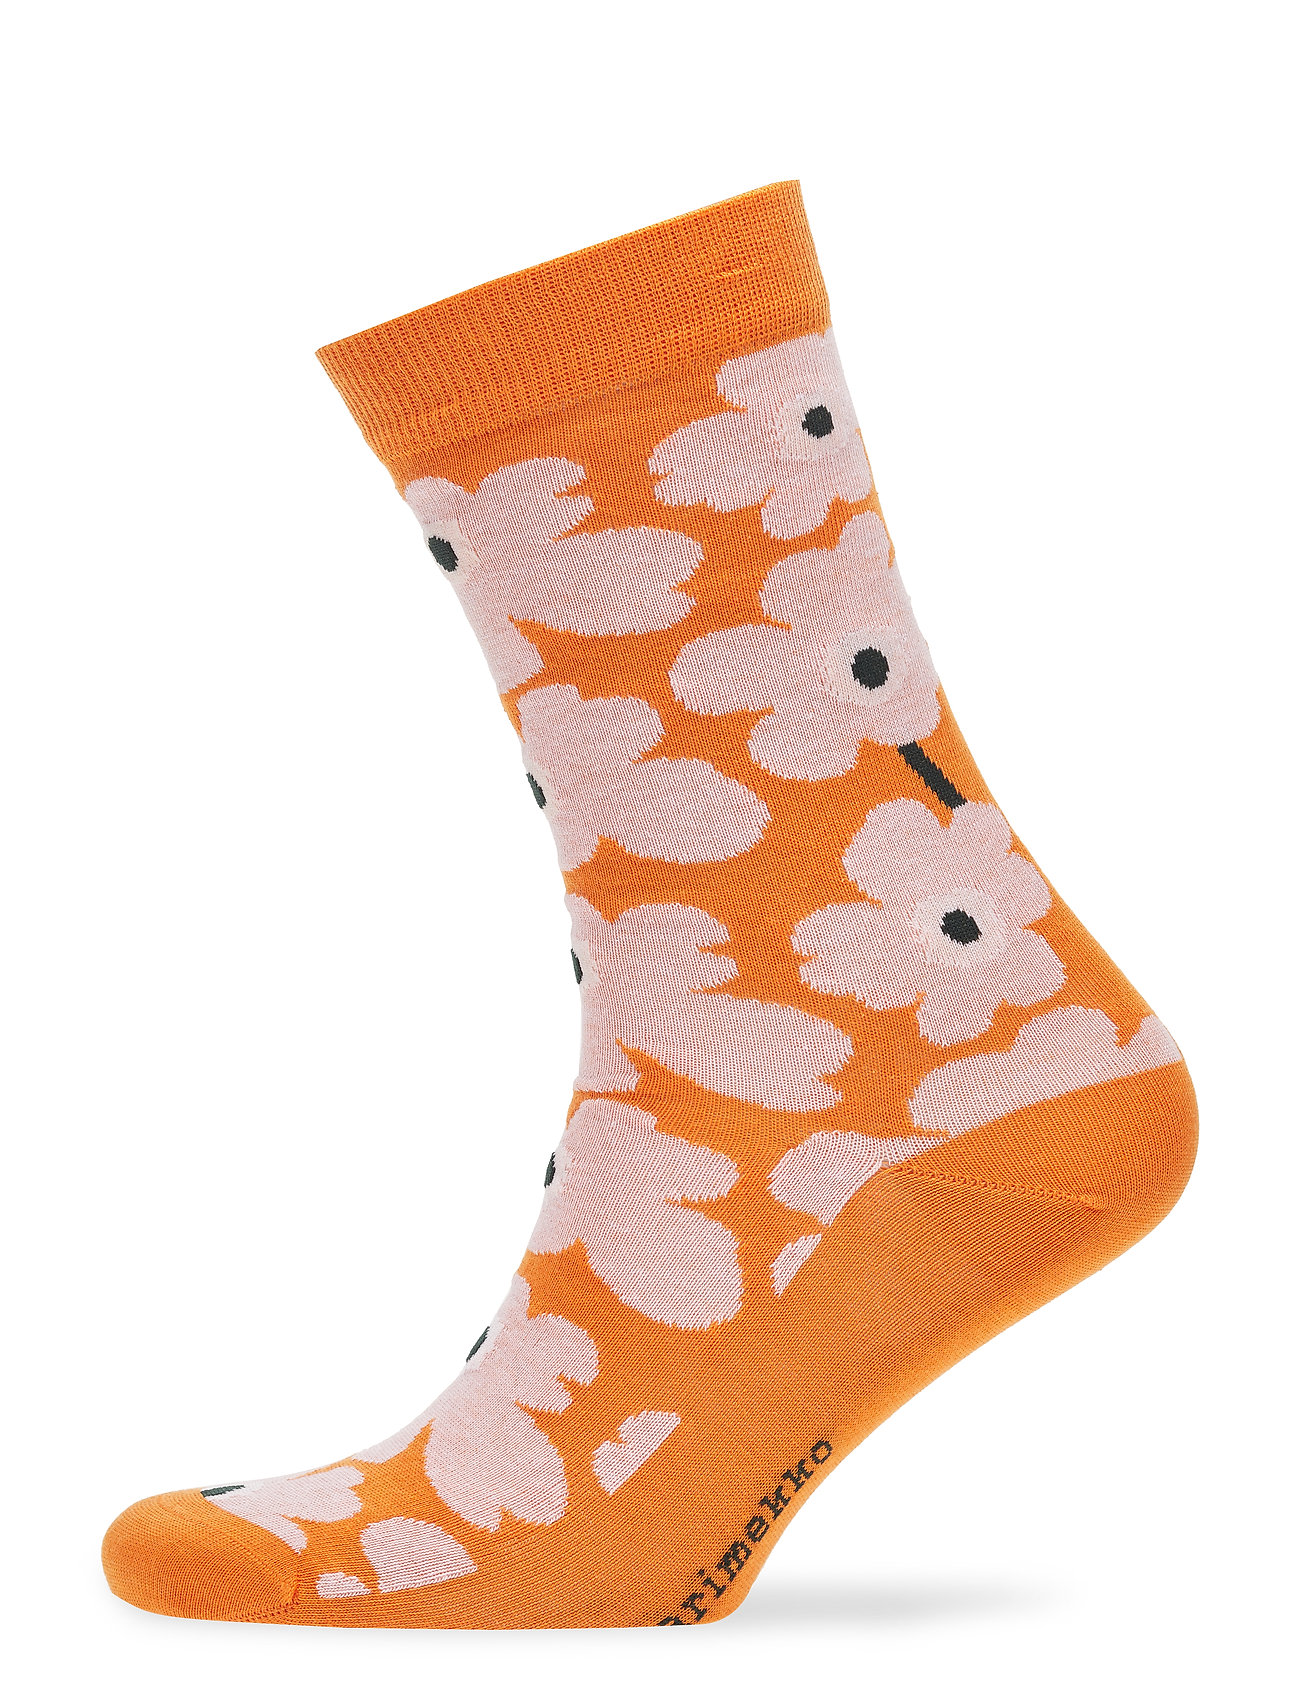 Marimekko HIETA Ankle socks - ORANGE, PINK, DARK GREEN